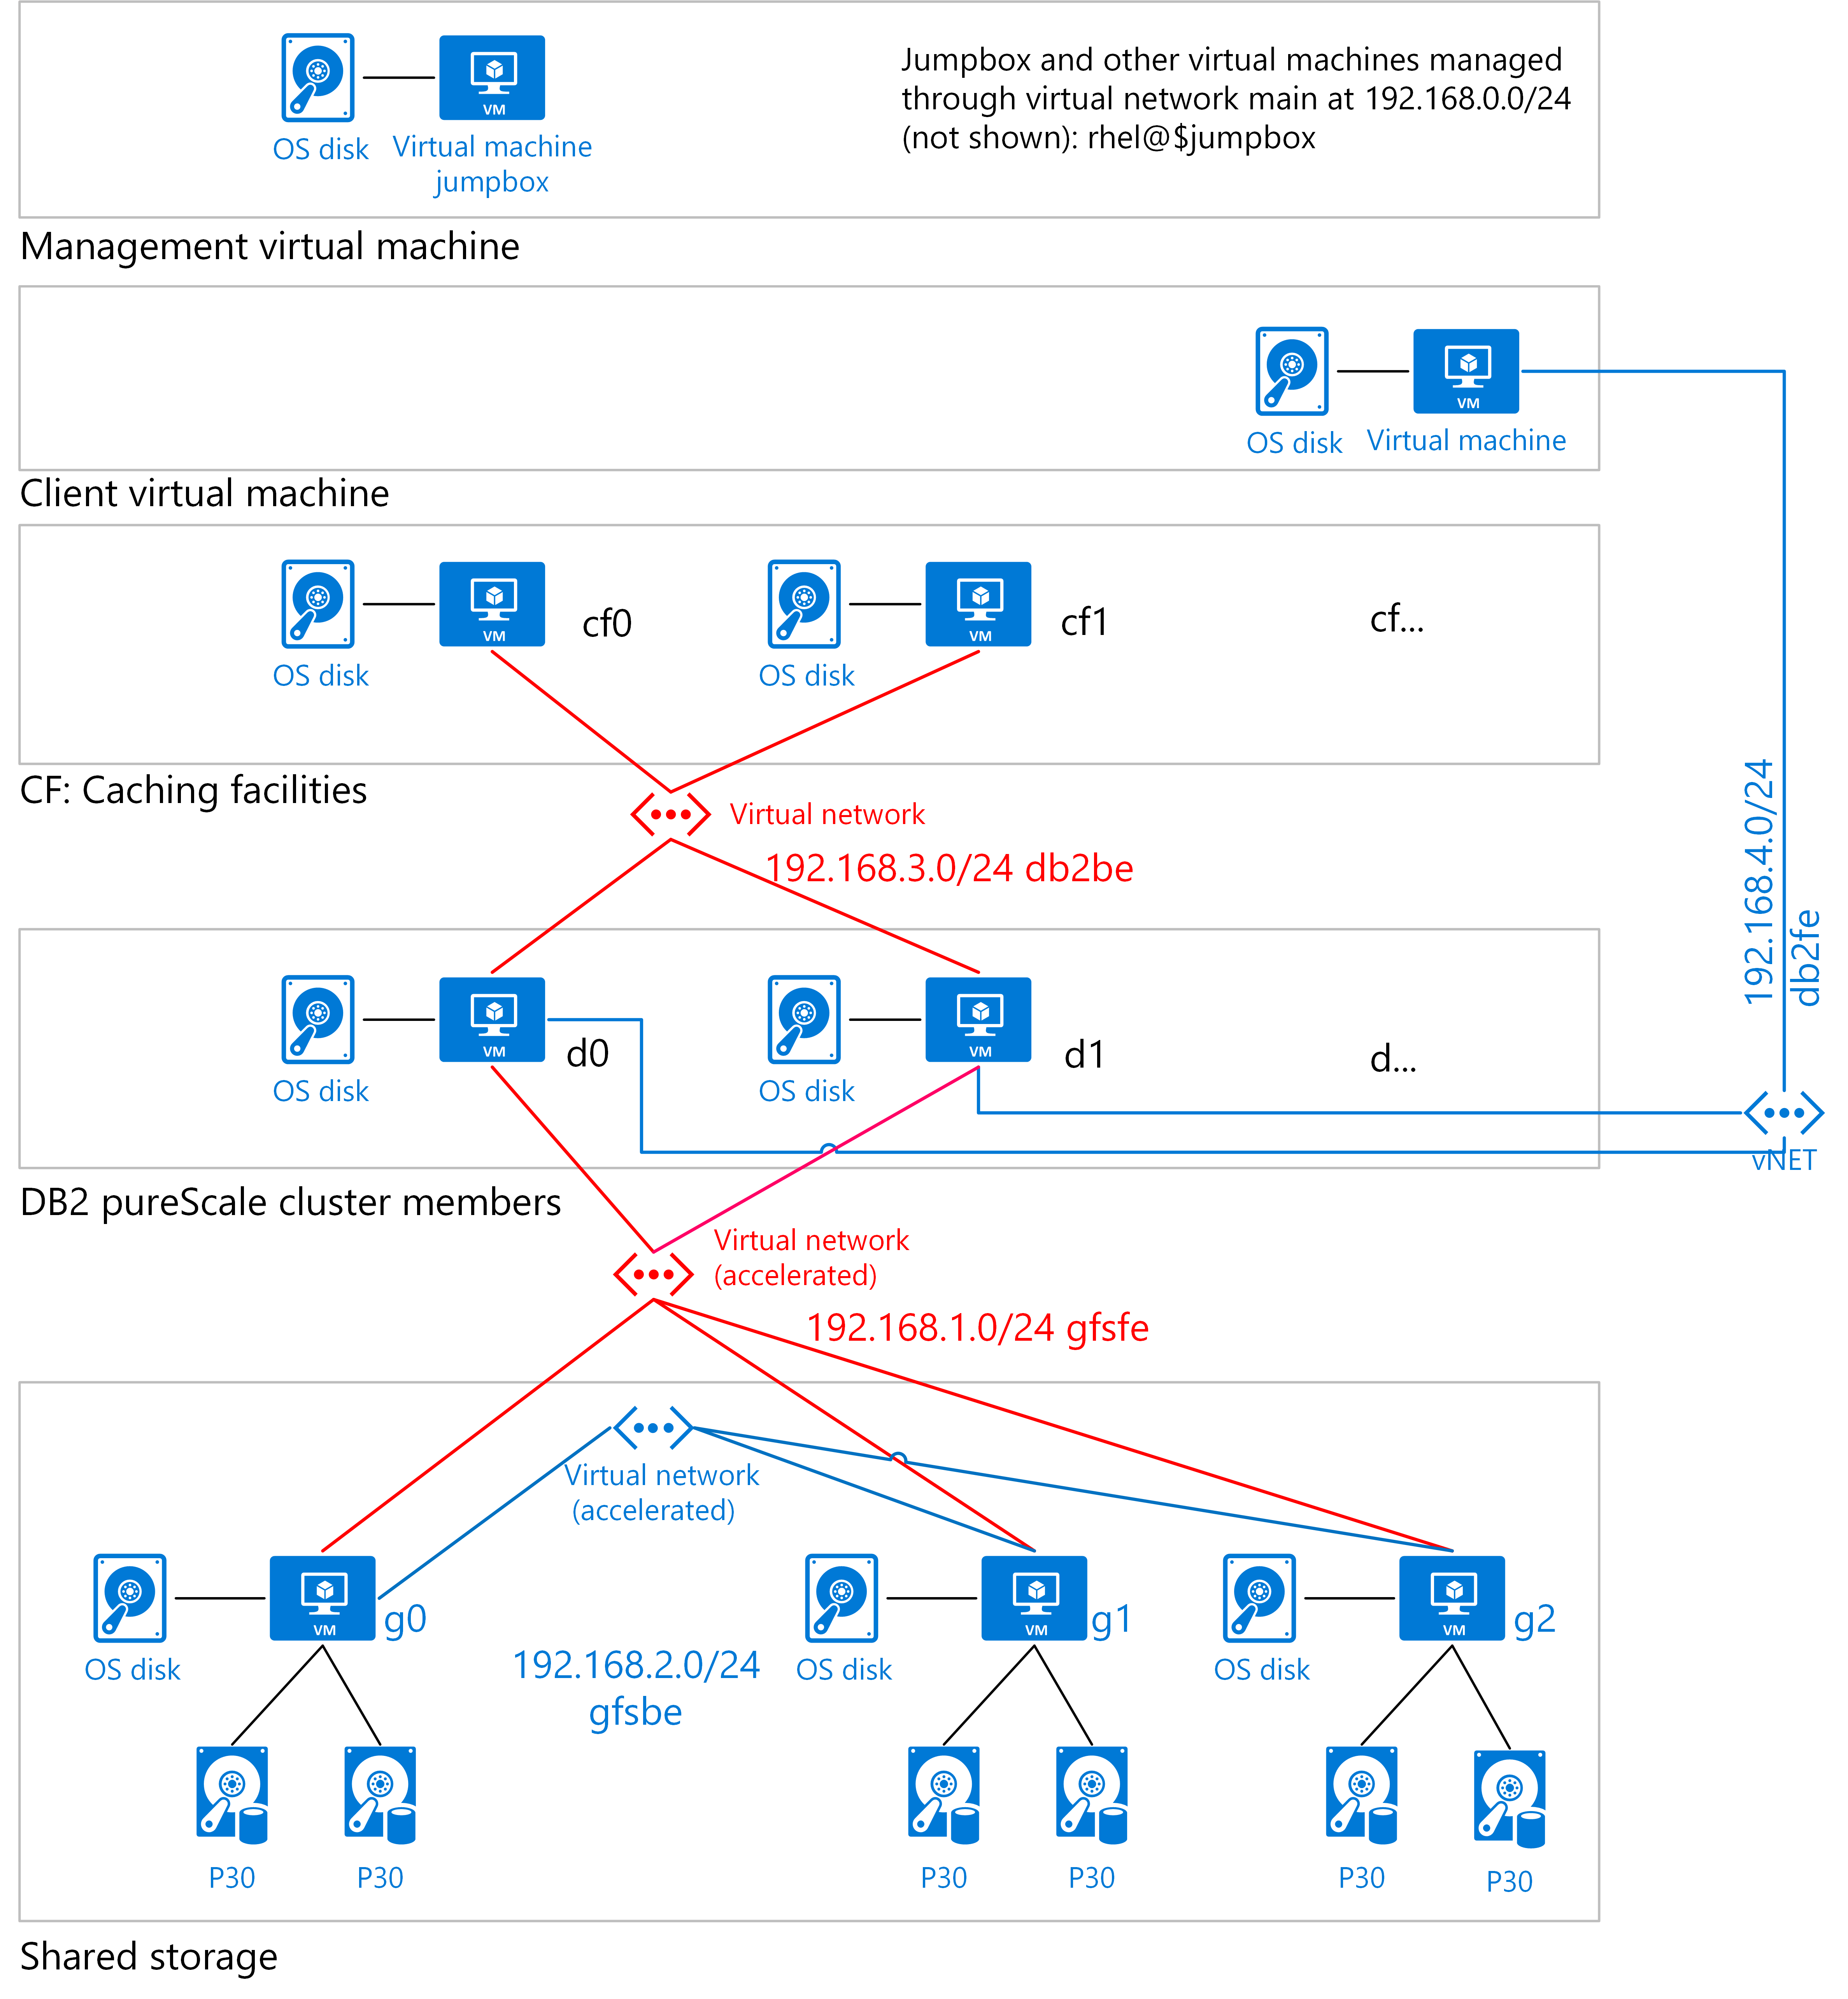 IBM DB2 pureScale on Azure | Microsoft Docs